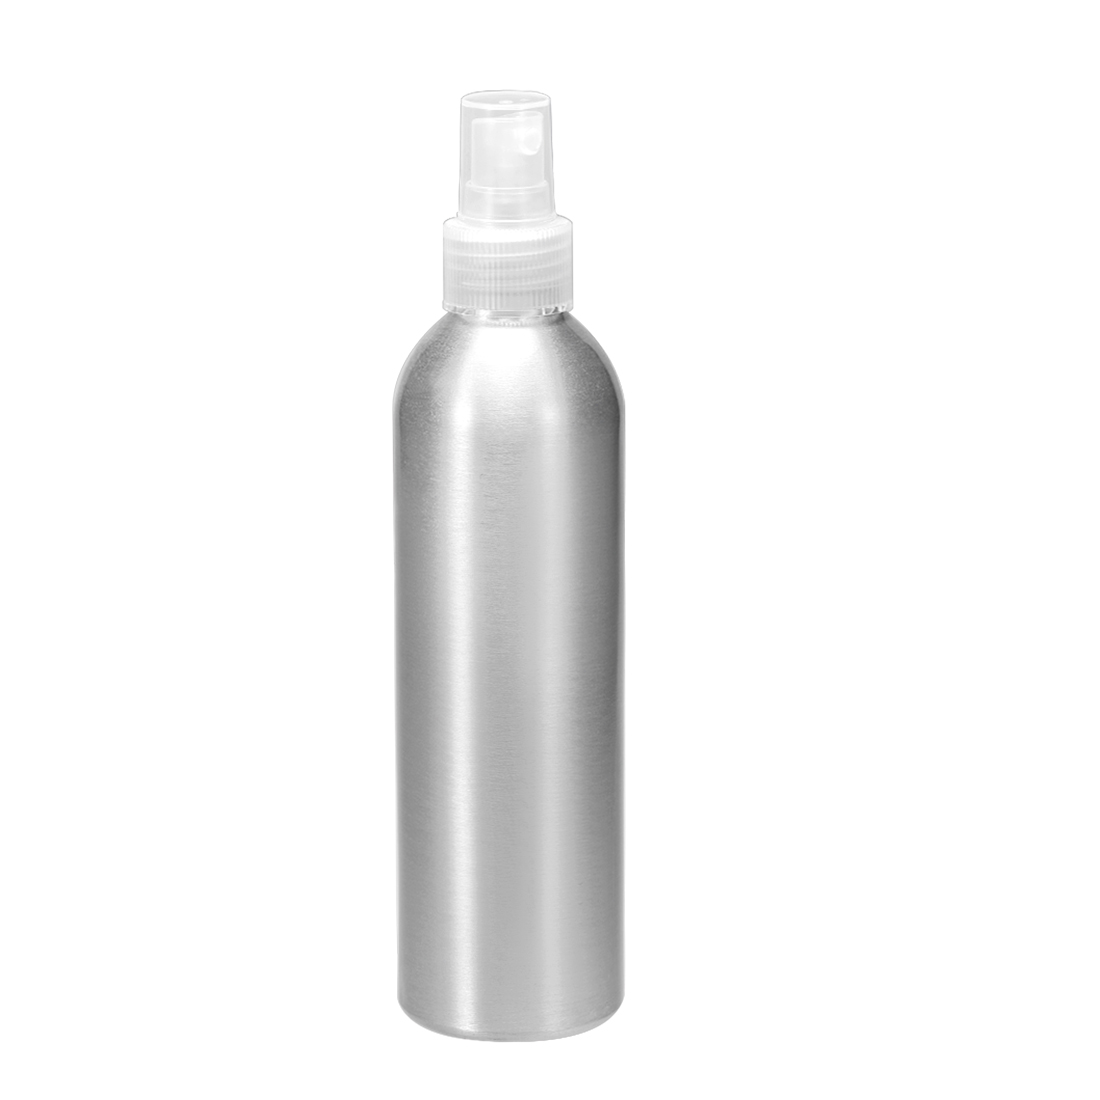 8.5oz/250ml Aluminium Spray Bottle with Clear Sprayer,Empty Refillable Container